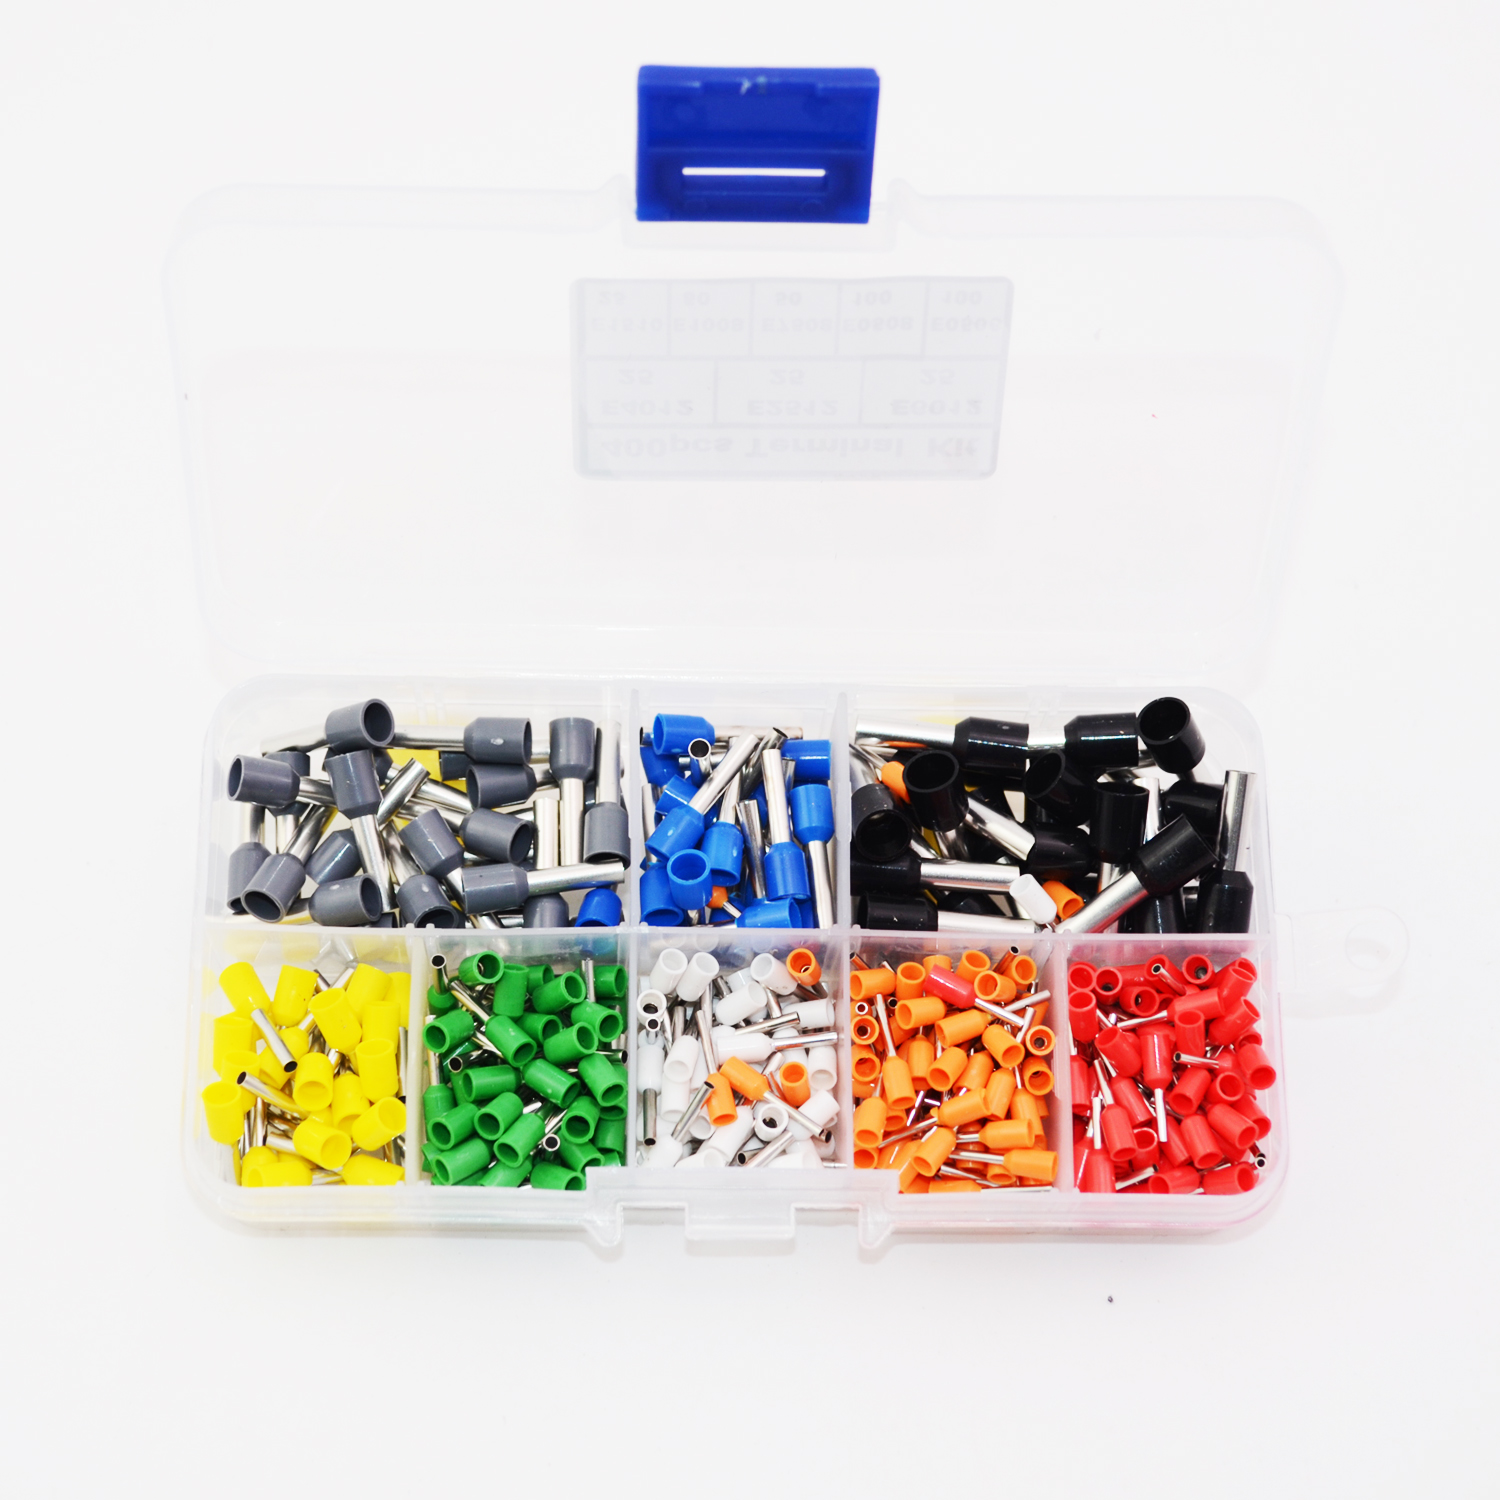 Hot sale 400pcs/set Insulated Cord Pin End Terminal Ferrules Kit Set Wire Copper Crimp Connector AWG 22 - 10 свитшот print bar оранжевая фантазия